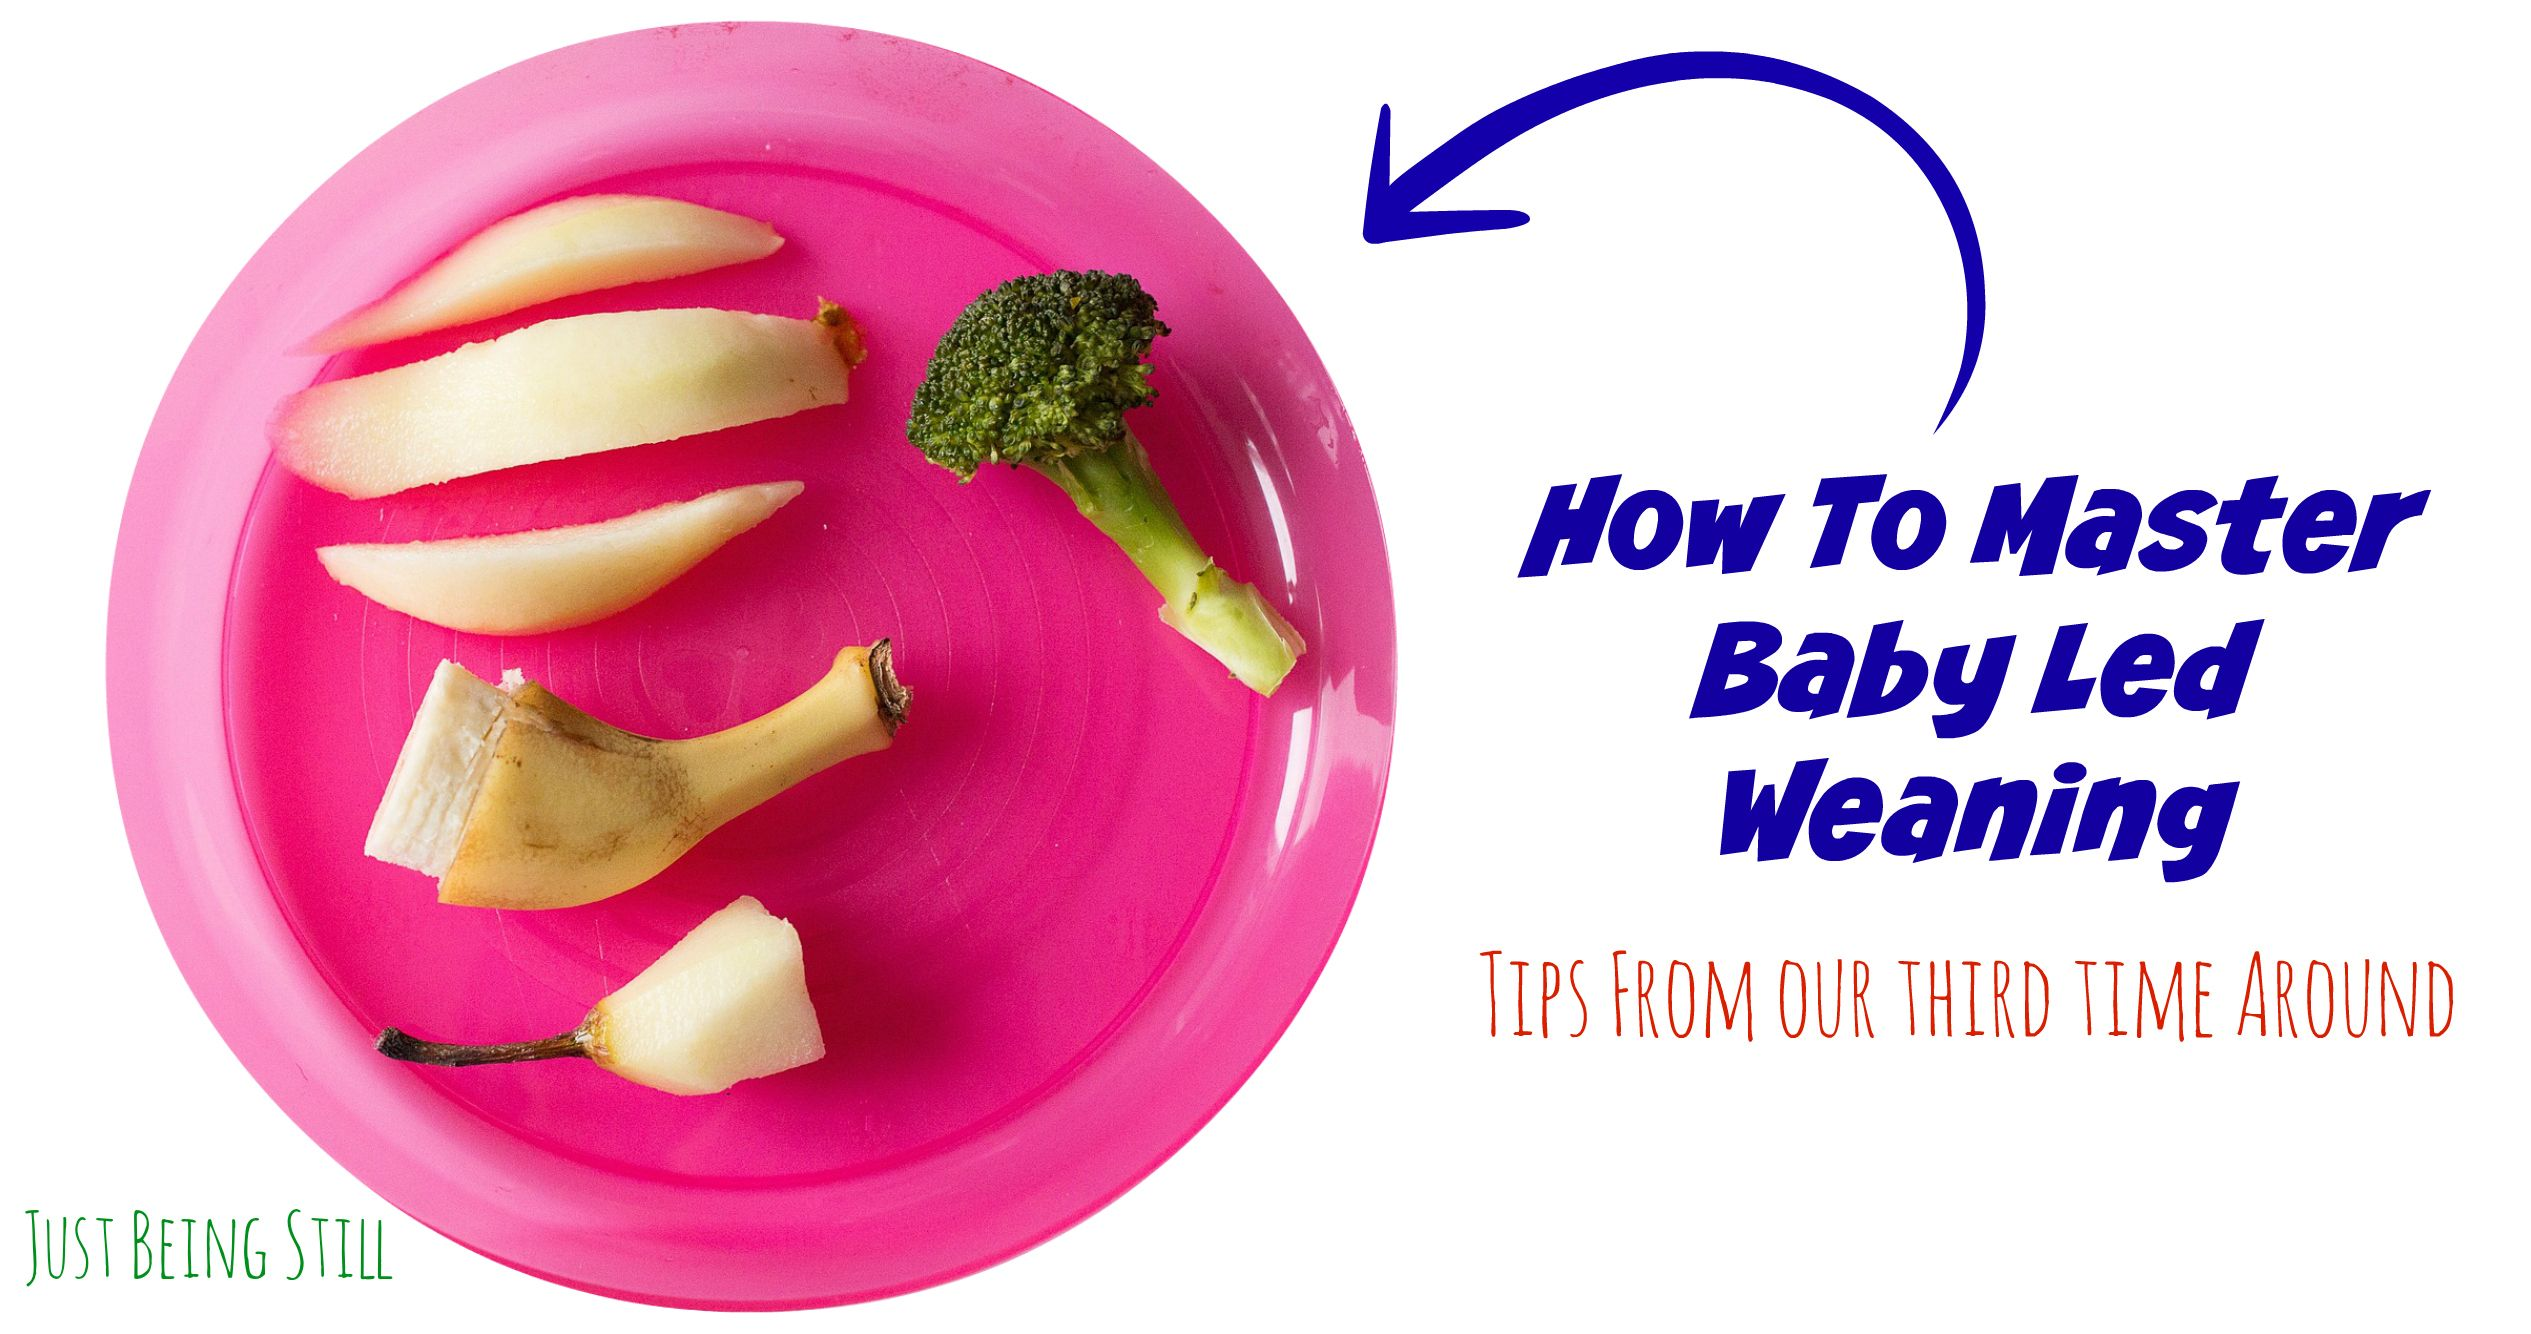 Healthy Food Recipes For One Year Old